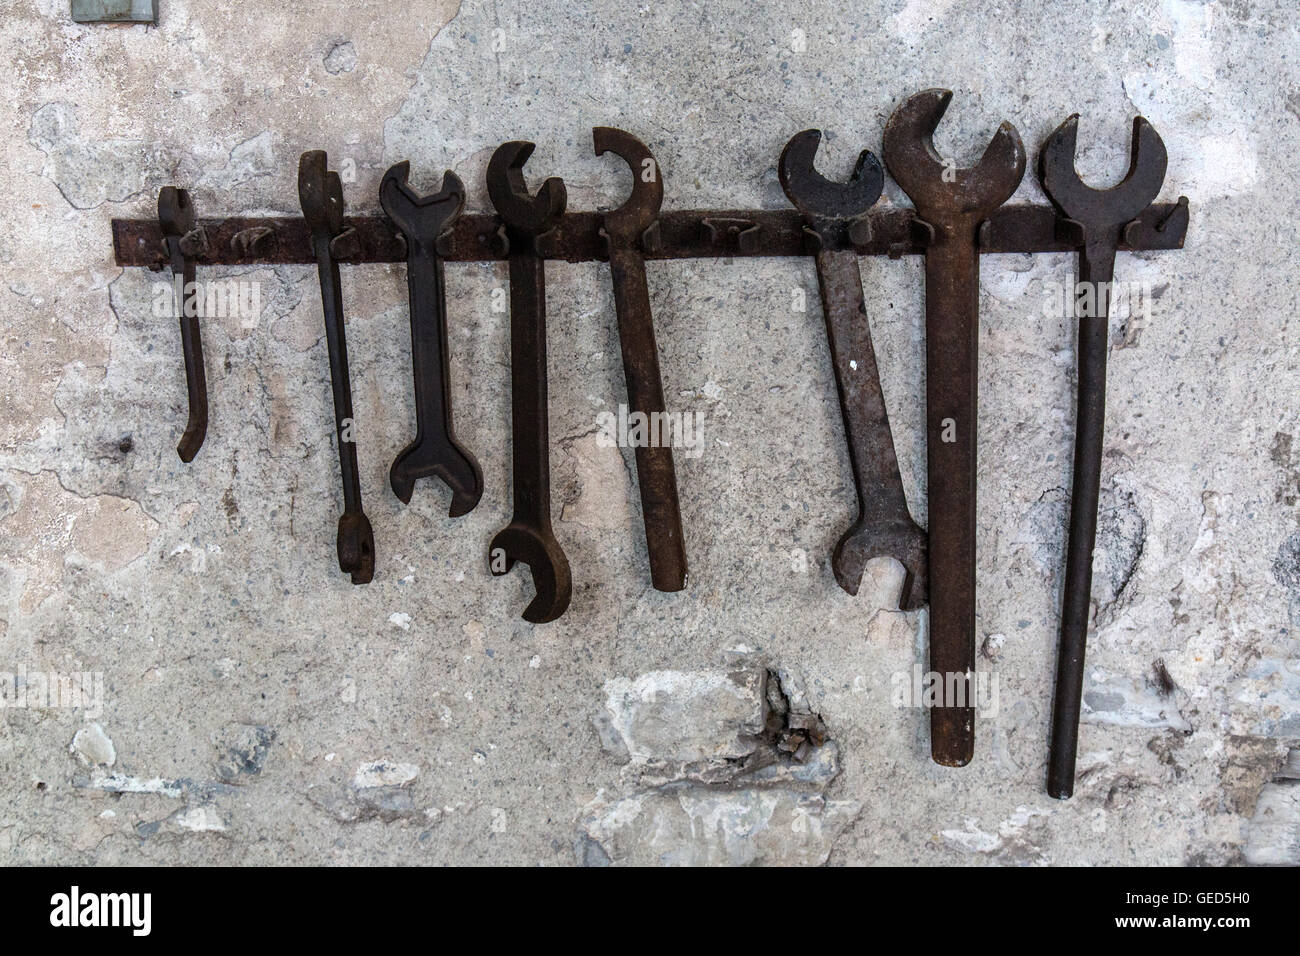 Spanners hanging on the wall inside the National Slate Museum in Llanberis, Wales. - Stock Image